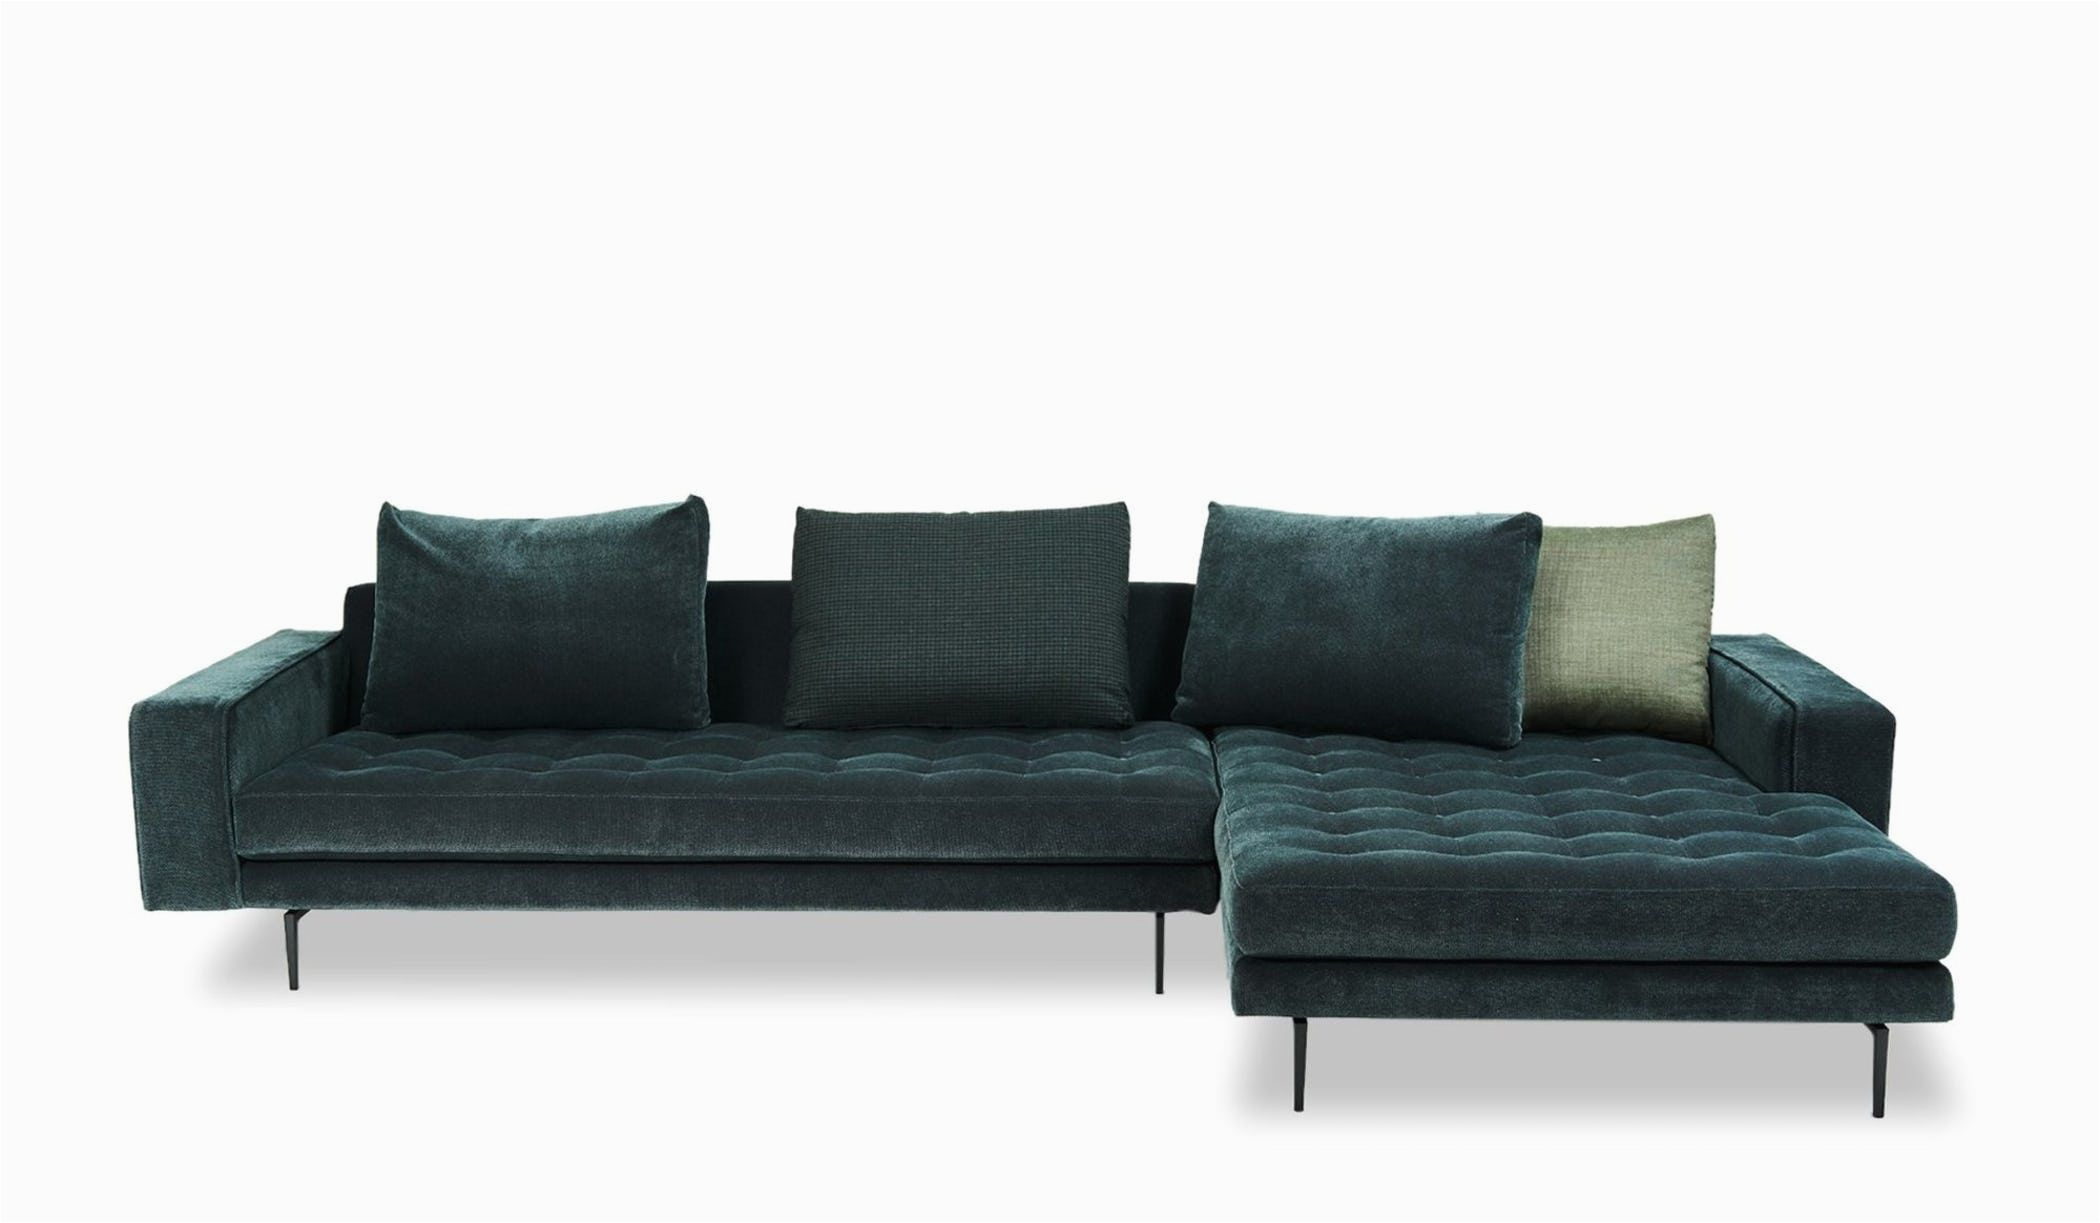 Nordisk form sofa Balder Campo sofa by Wendelbo now Available at Haute Living